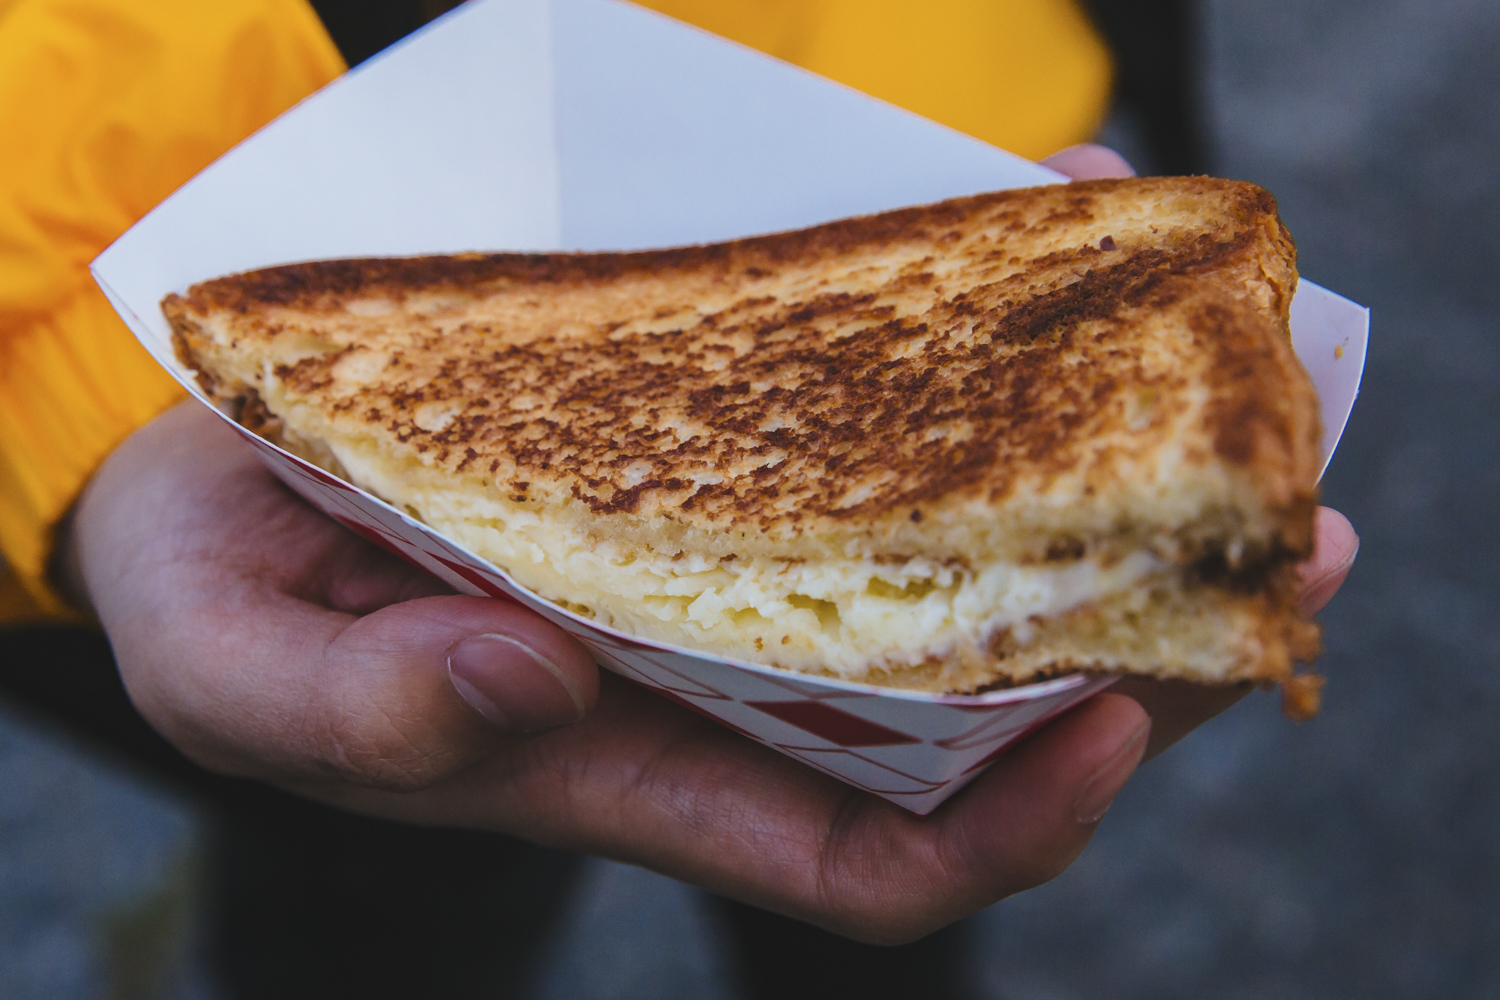 <p>&quot;The White Cheddar Royale&quot; from Bread and Circuses food truck. Truffle Duck Fat Butter, Darigold White Cheddar, Brioche. Seattle's annual Grilled Cheese Grand Prix event kicked off this weekend, properly celebrating April as National Grilled Cheese Month. We went, obviously (for work....) and here were the juiciest sammies on the block we could find. The good news? Pretty much all of these come from brick and mortar stores you can find any time in the city - not just April, and not just t the Grand Prix. (Image: Sunita Martini / Seattle Refined)</p>